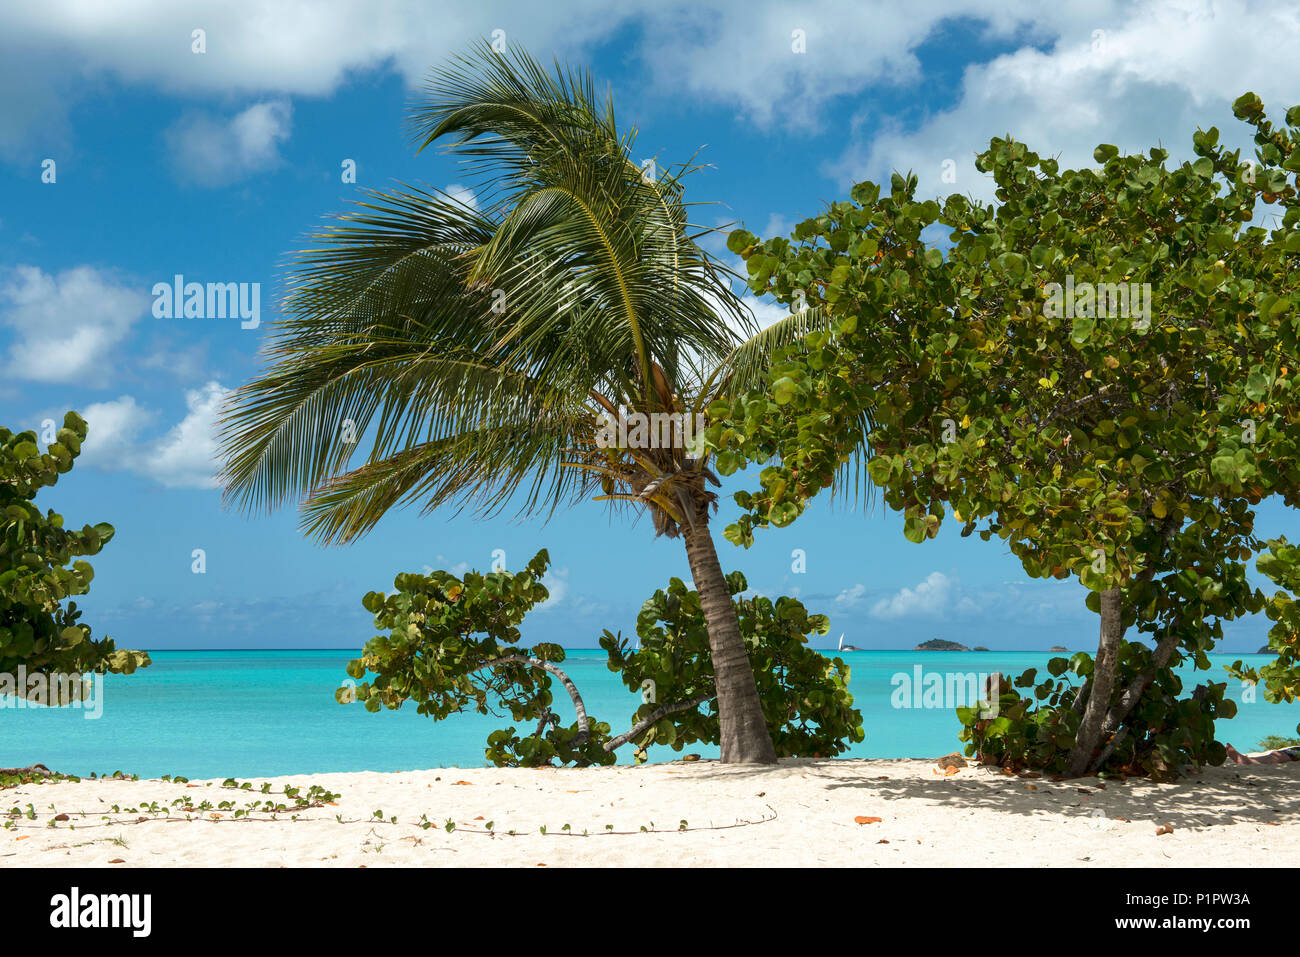 Trees growing in the white sand on the shore of a tropical island, Jolly Harbour; Antigua and Barbuda - Stock Image